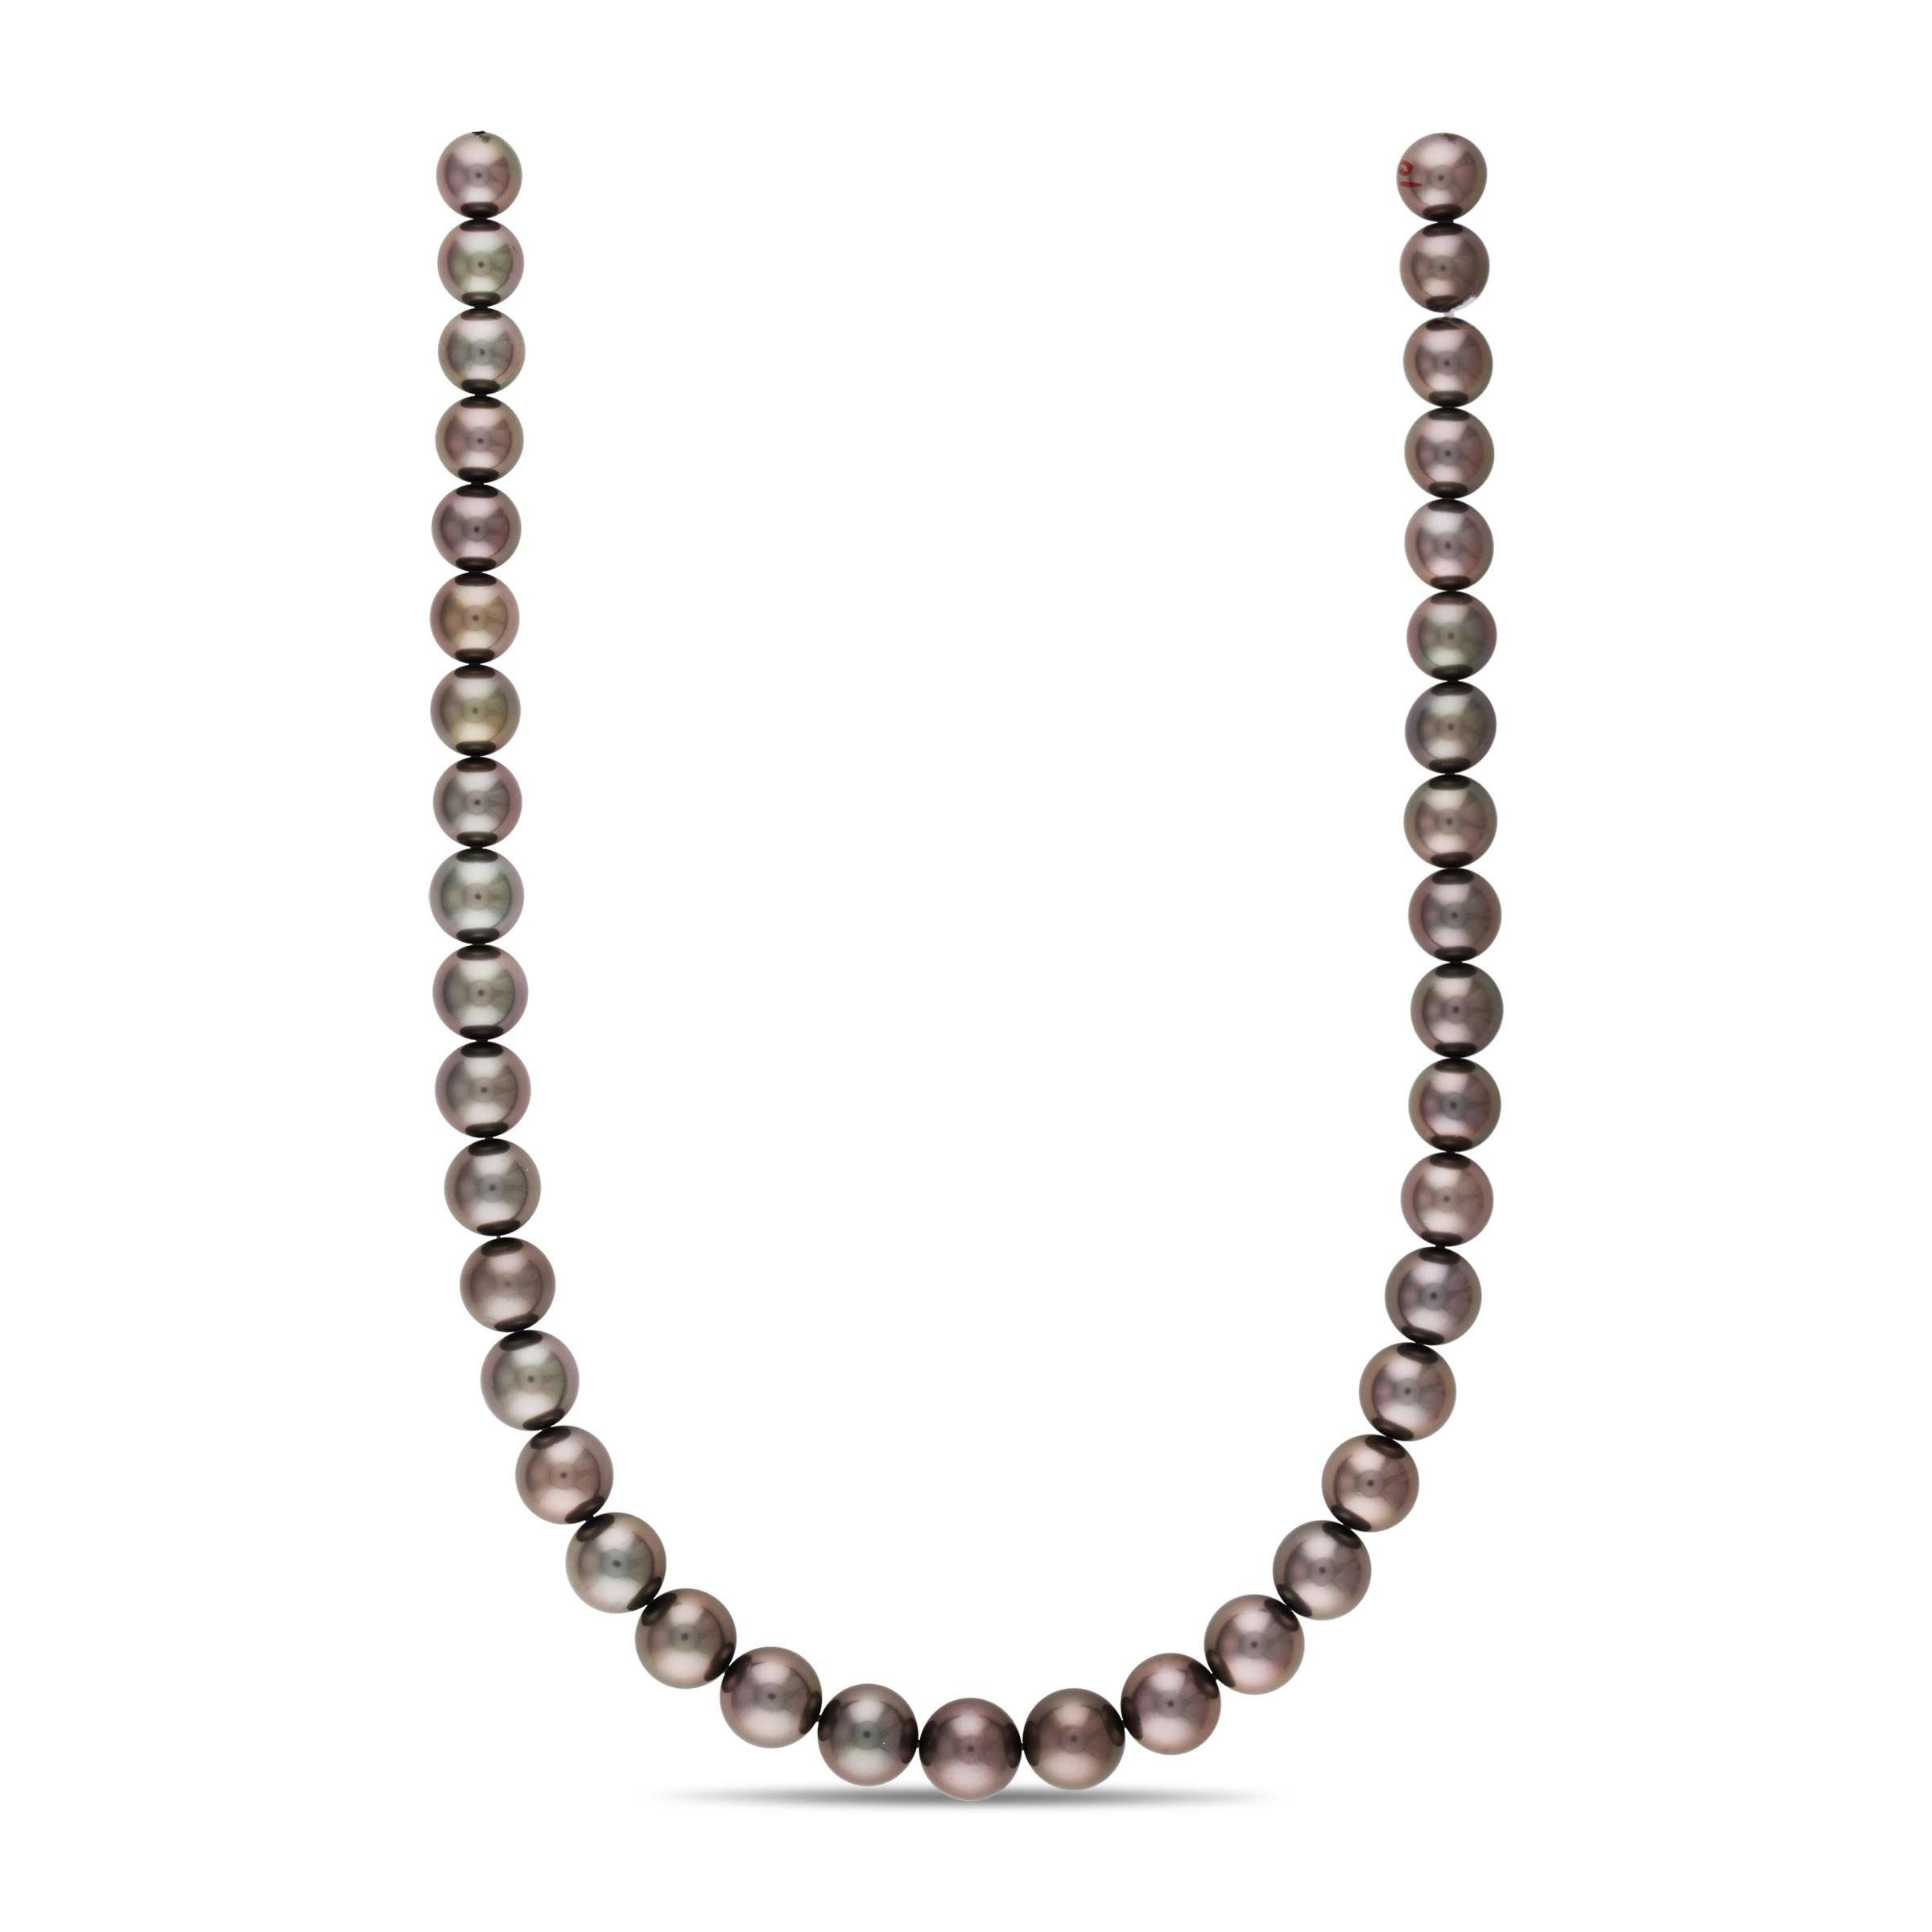 18-inch 10.0-11.8 mm AAA Round Tahitian Pearl Necklace